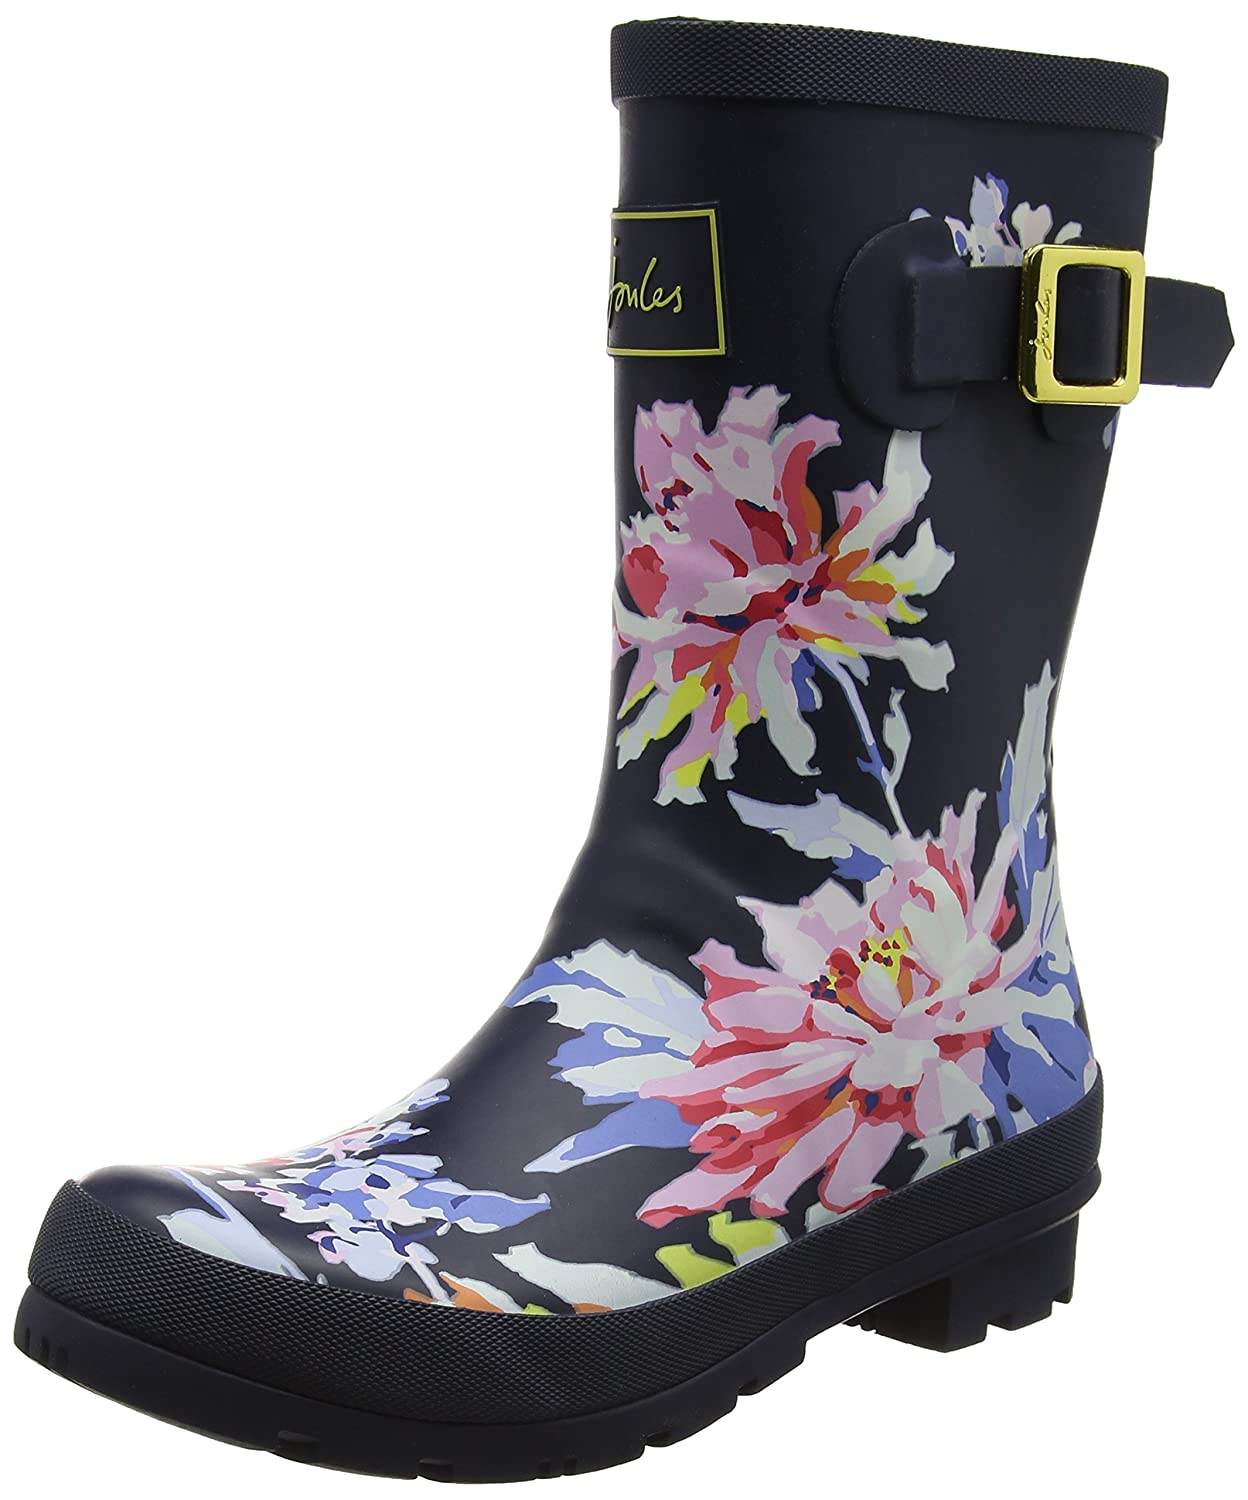 Joules Women's Molly Welly Rain Boot B073XJTR74 5 B(M) US|Navy Whitstable Floral Rubber